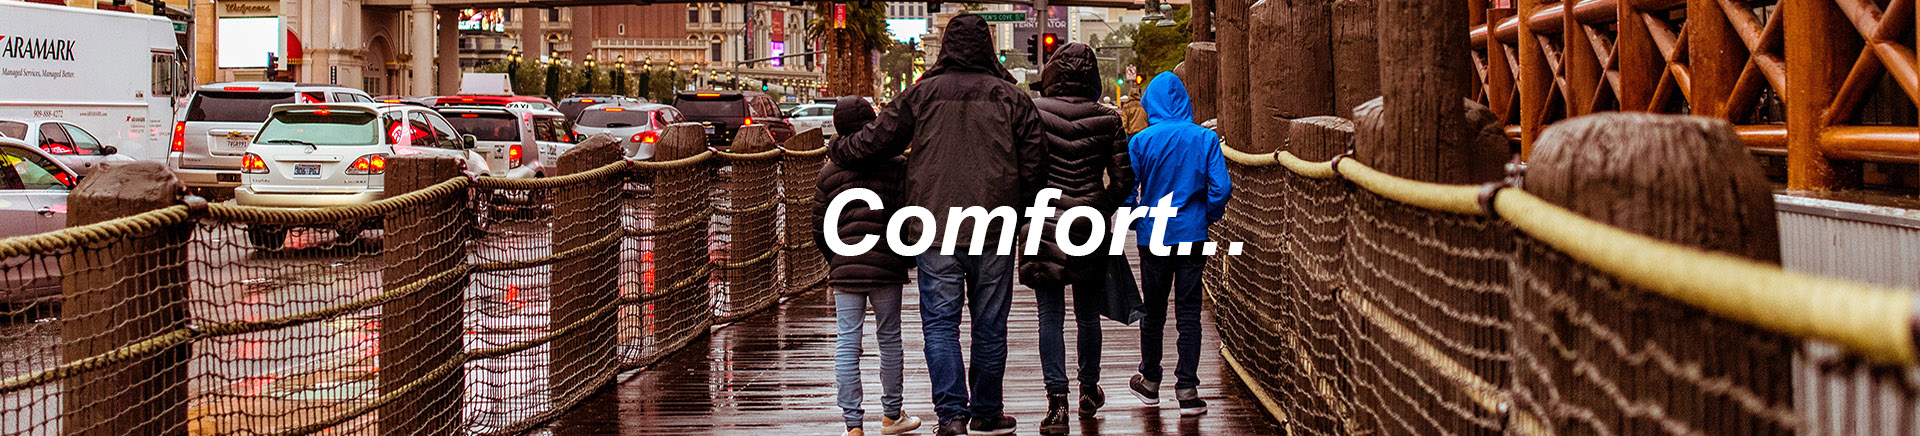 comfort-wax-jacket-family